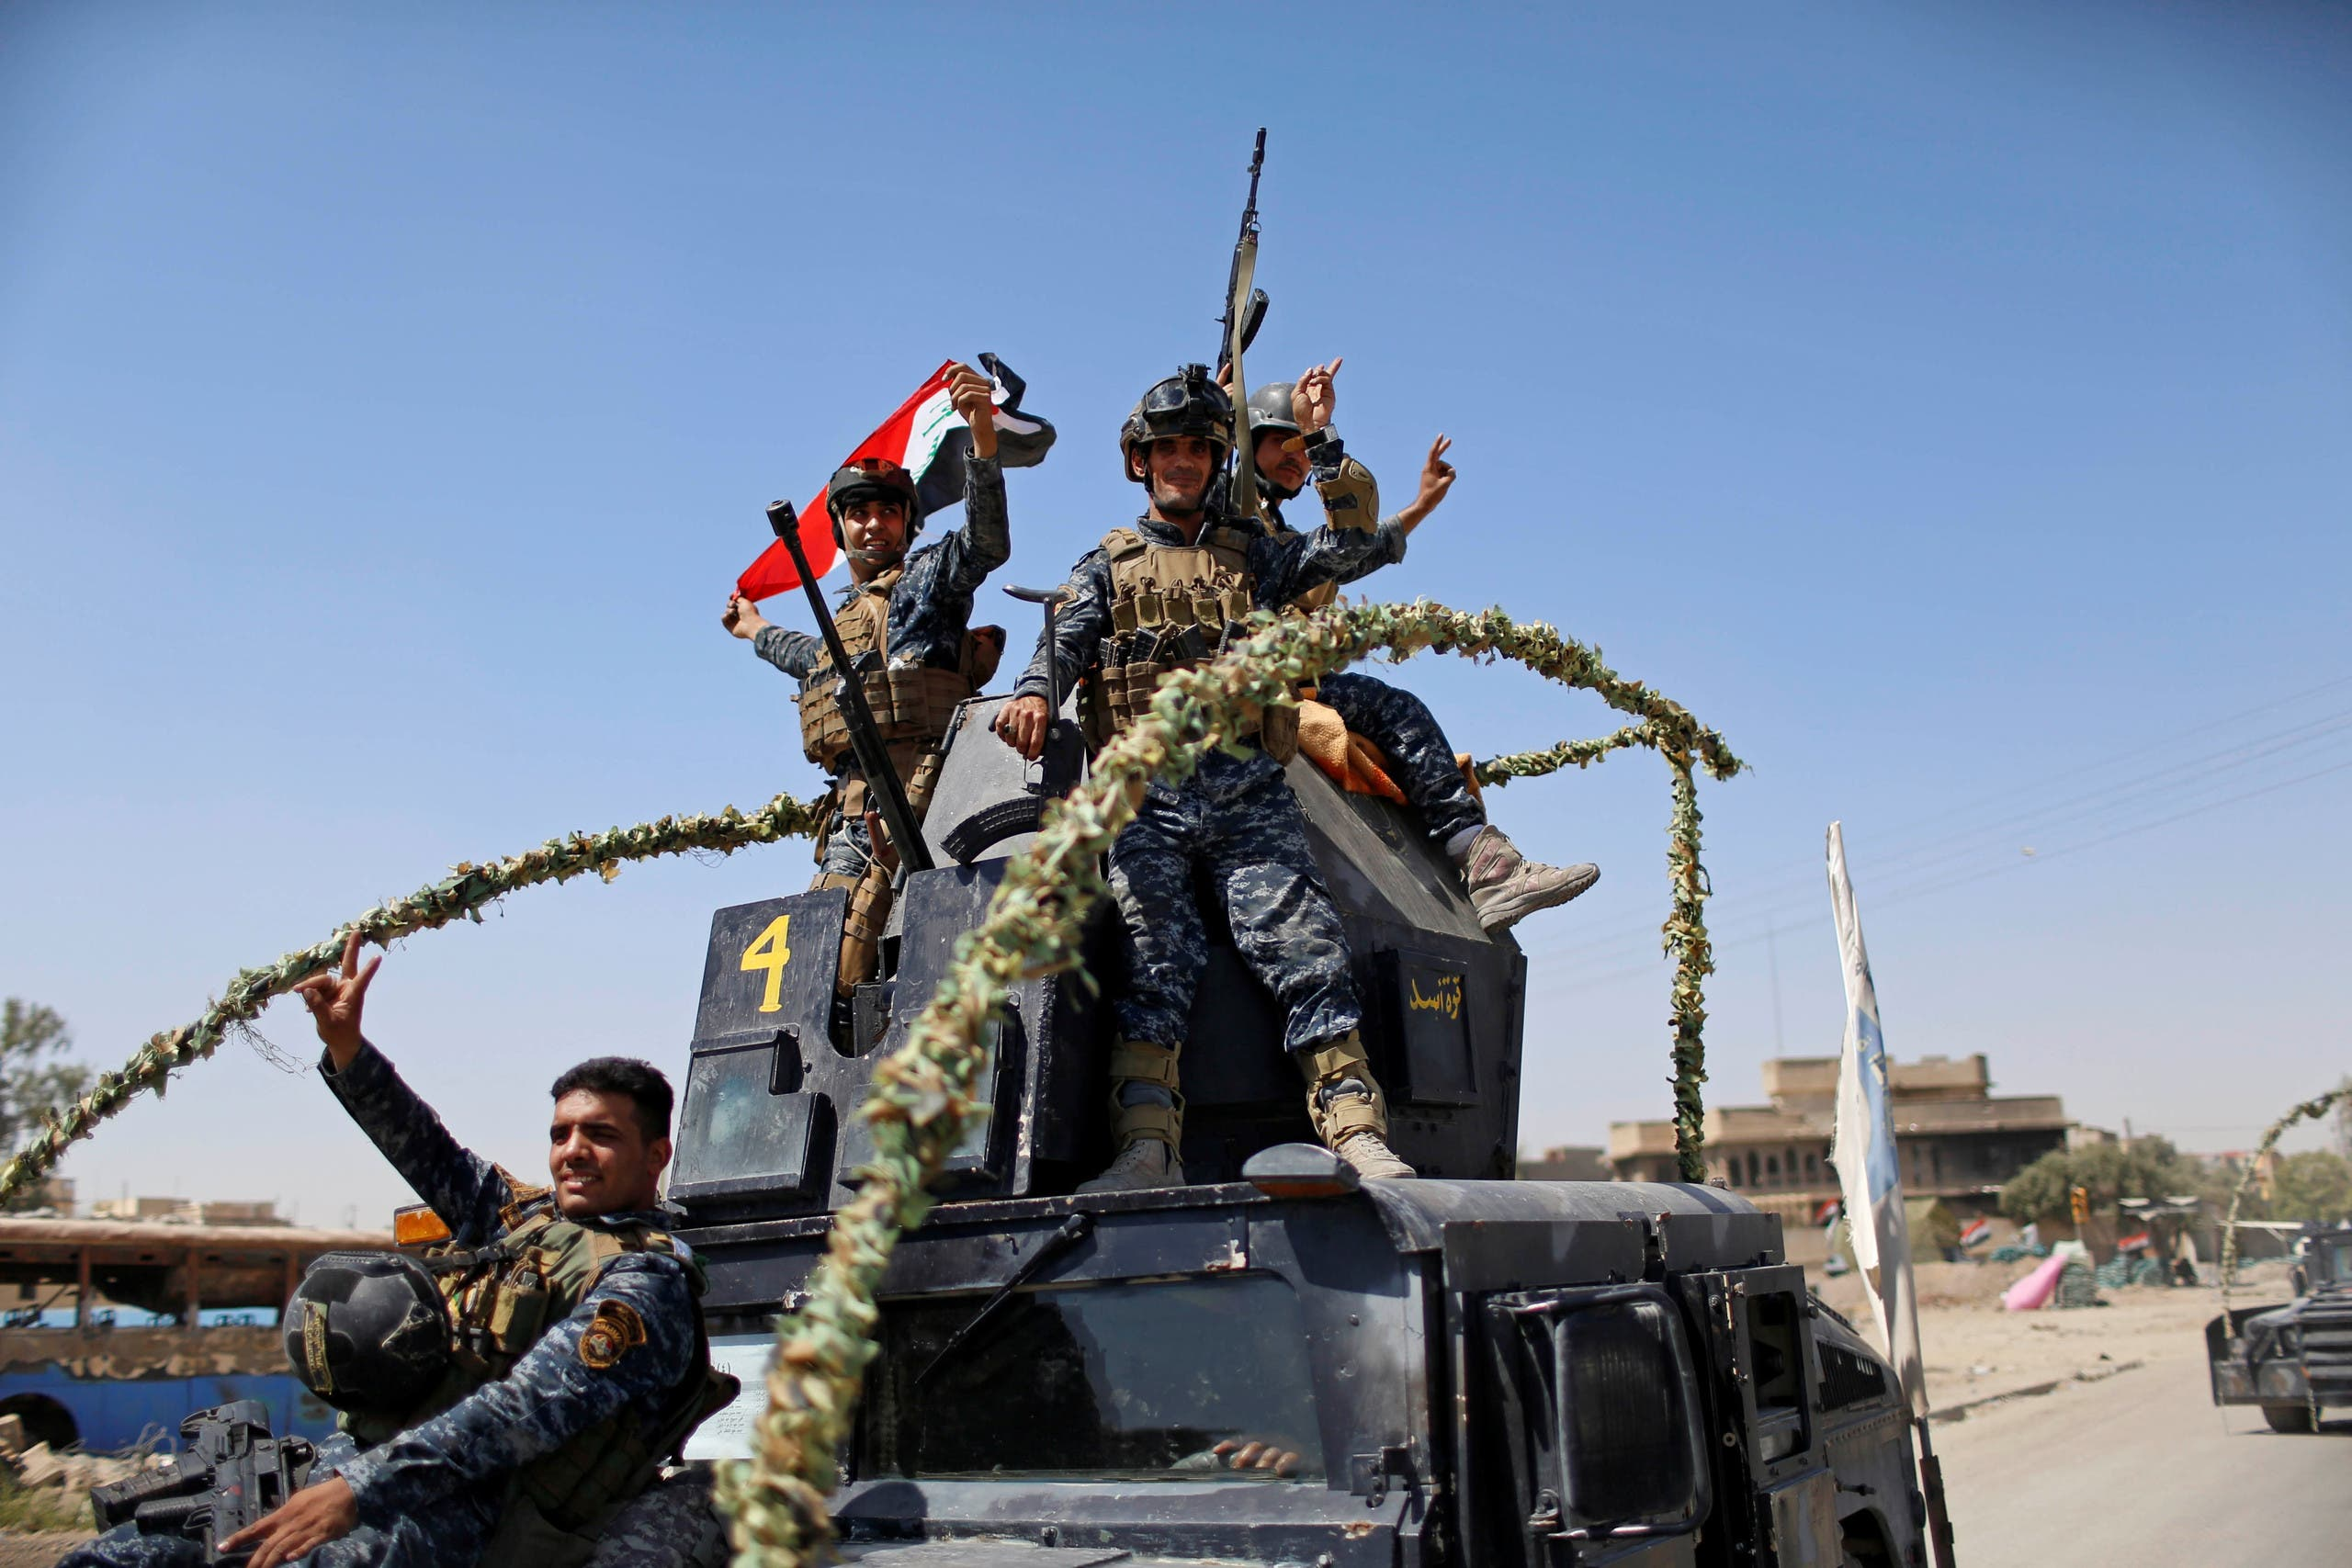 Members of the Iraqi Federal Police gesture after returning back from the front line in the Old City of Mosul, Iraq June 28, 2017. (Reuters)